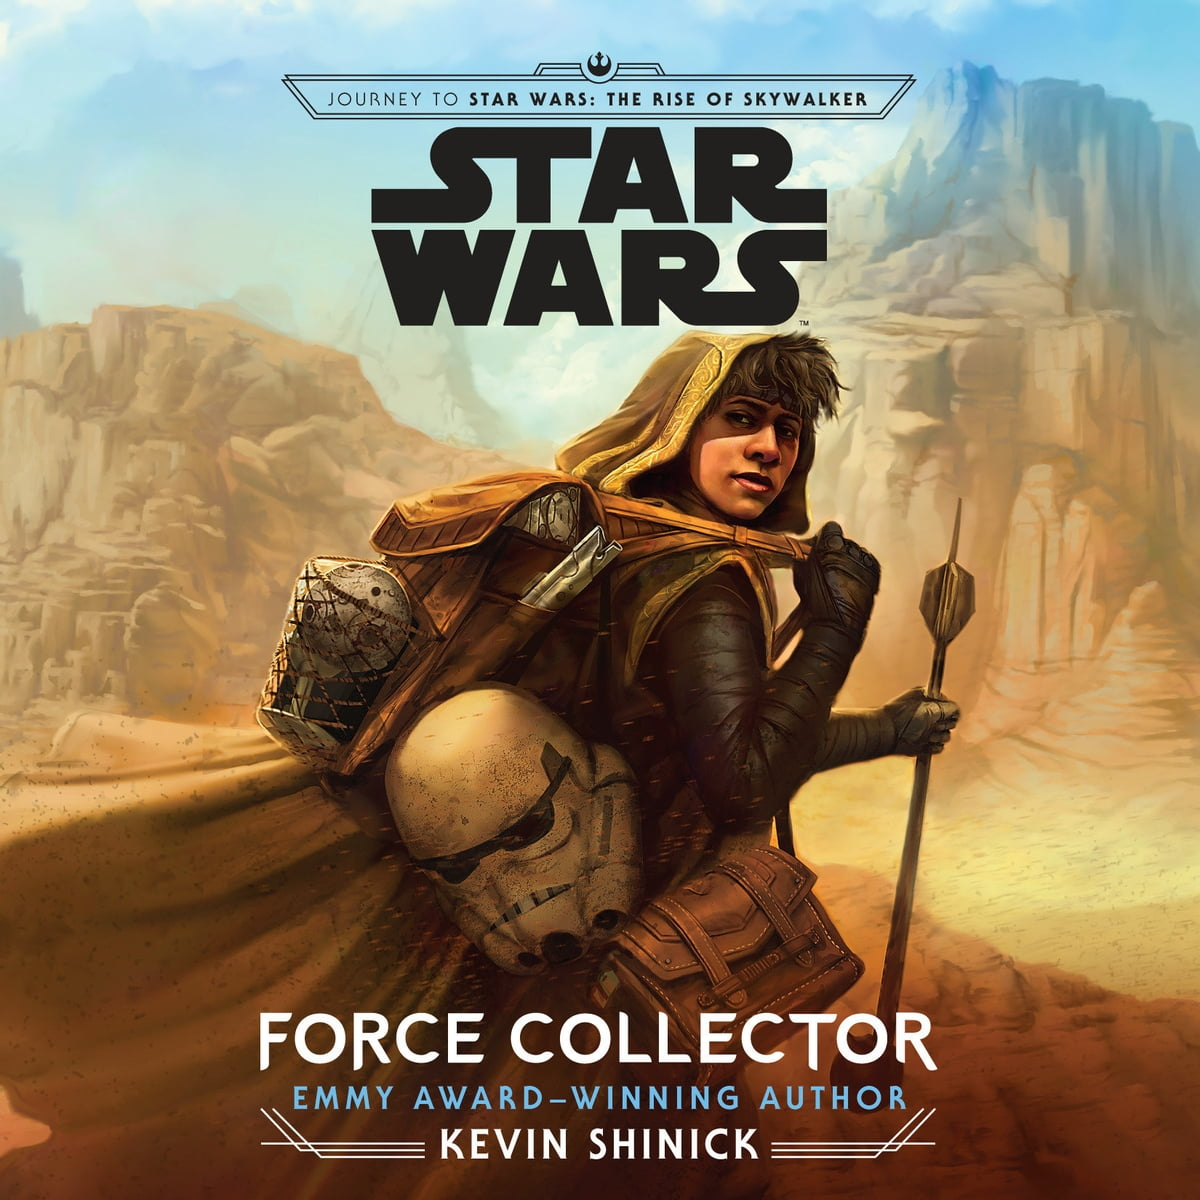 Journey To Star Wars The Rise Of Skywalker Force Collector Audiobook By Kevin Shinick 9780593155516 Rakuten Kobo